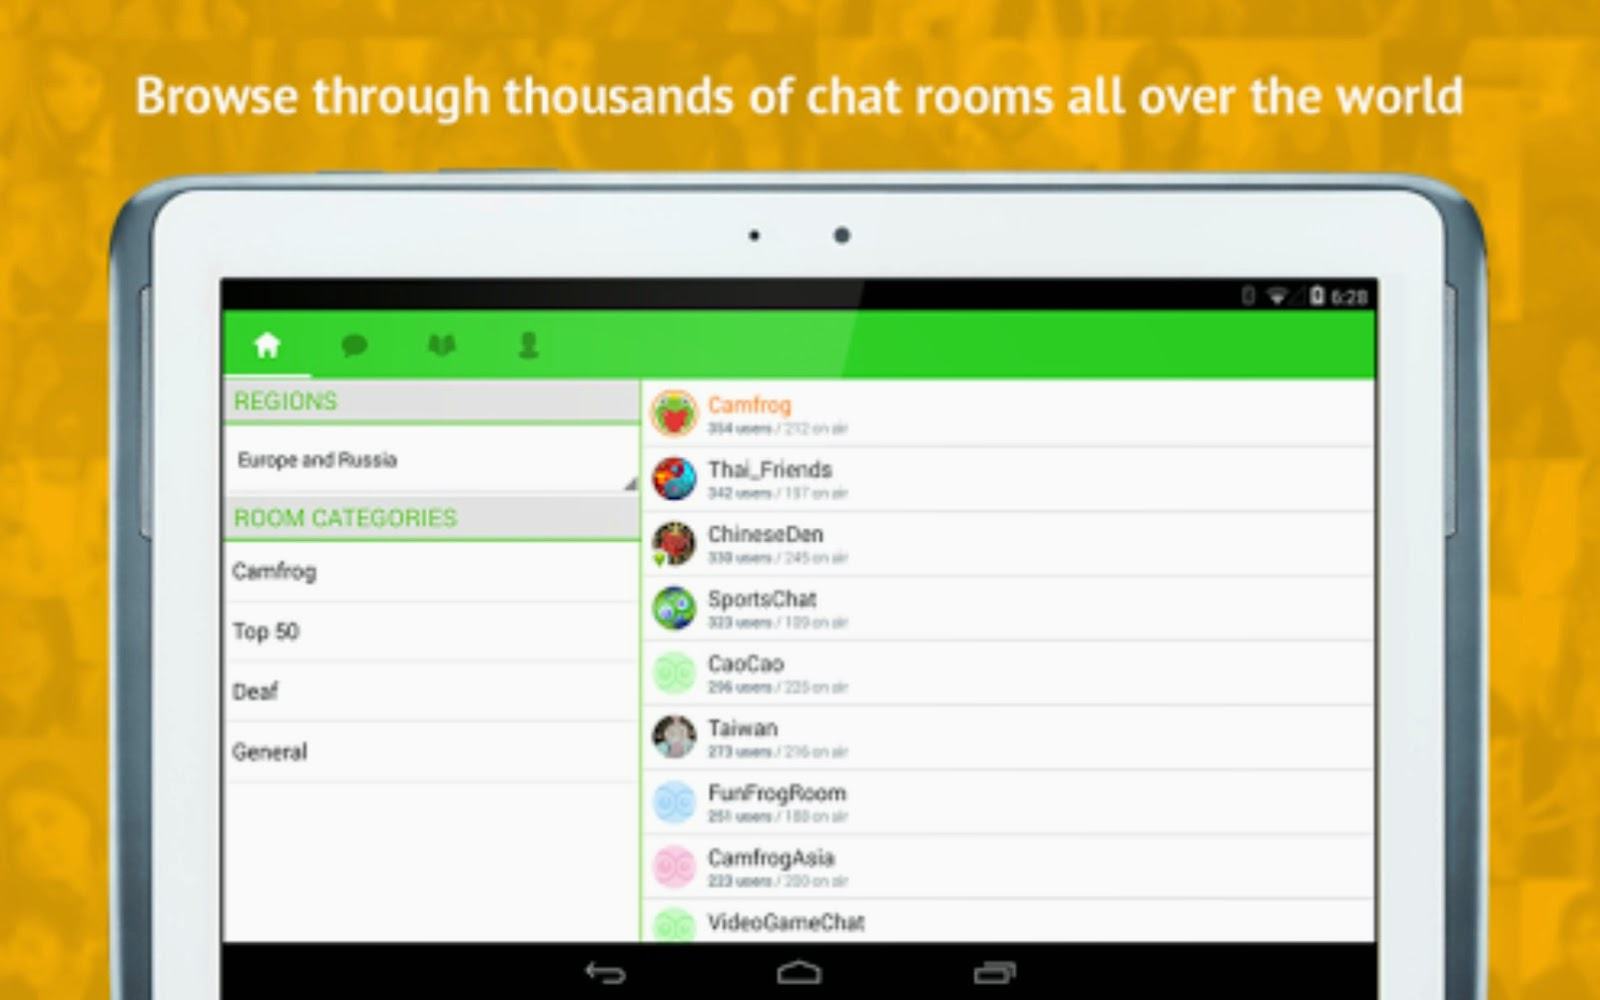 Camfrog Pro Android